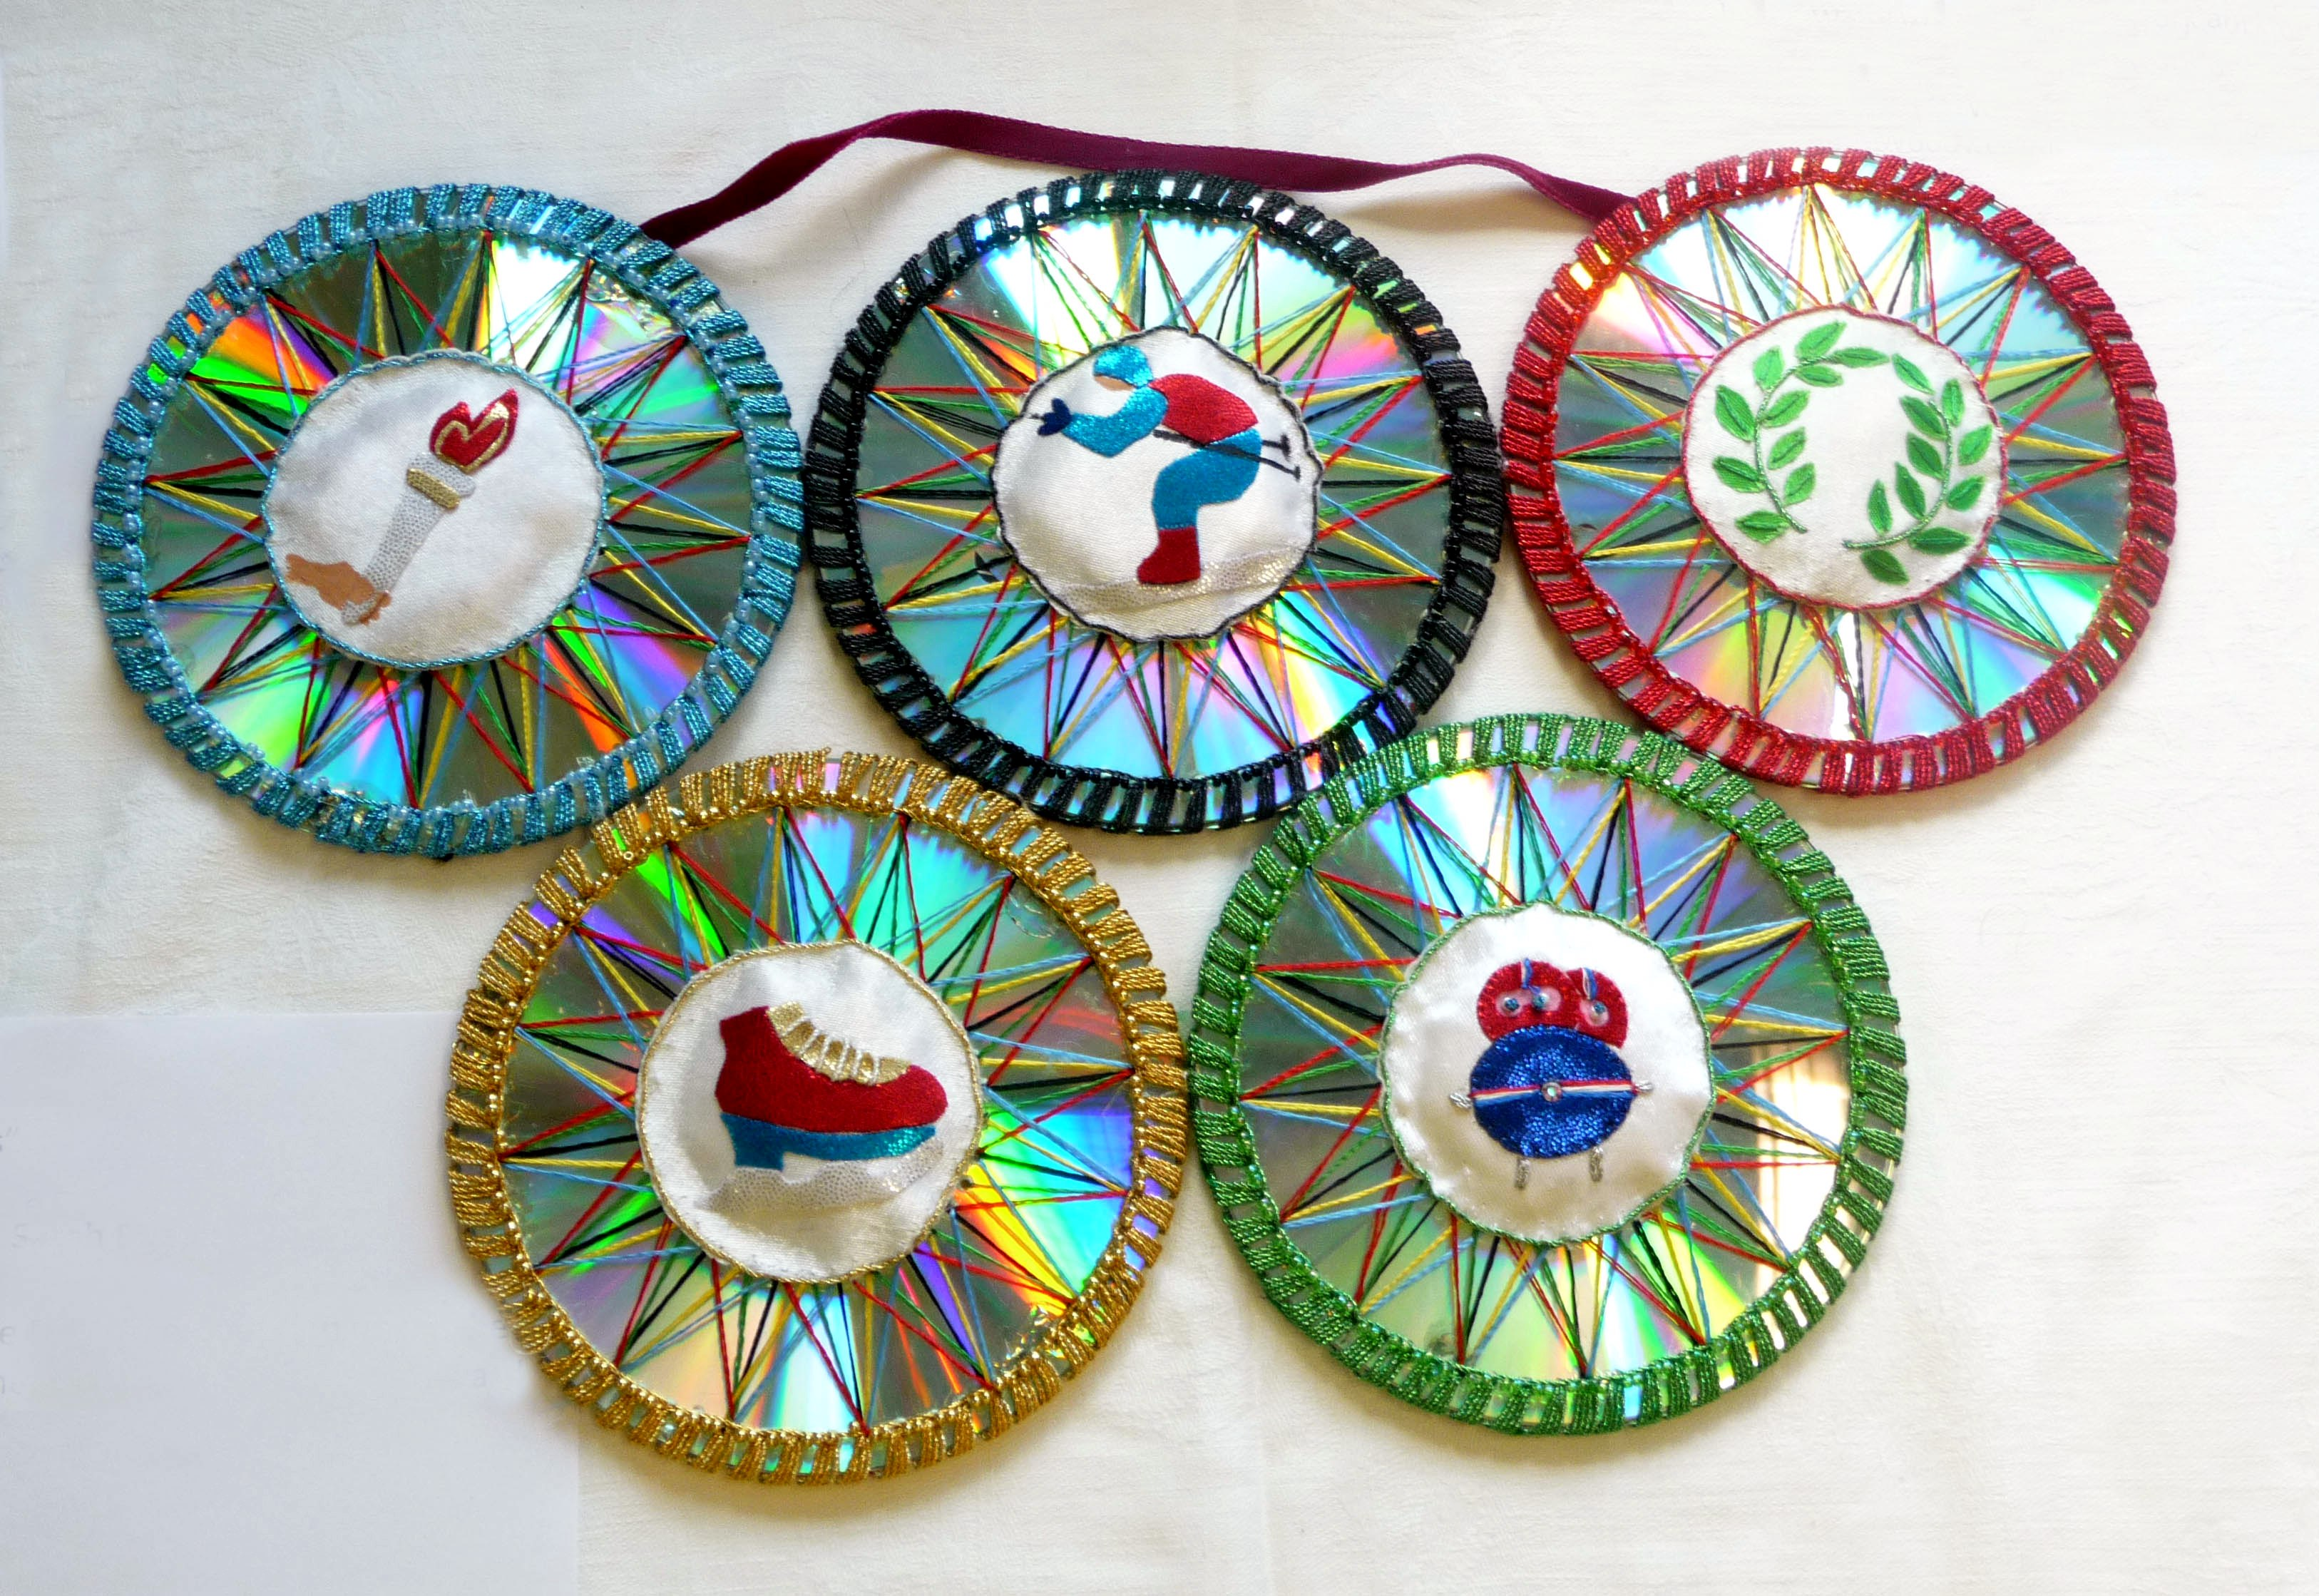 OLYMPIC DISKS by Sarah Ruaux, Bolton YE, Winner of DeDenne Competition age 9-11 Award